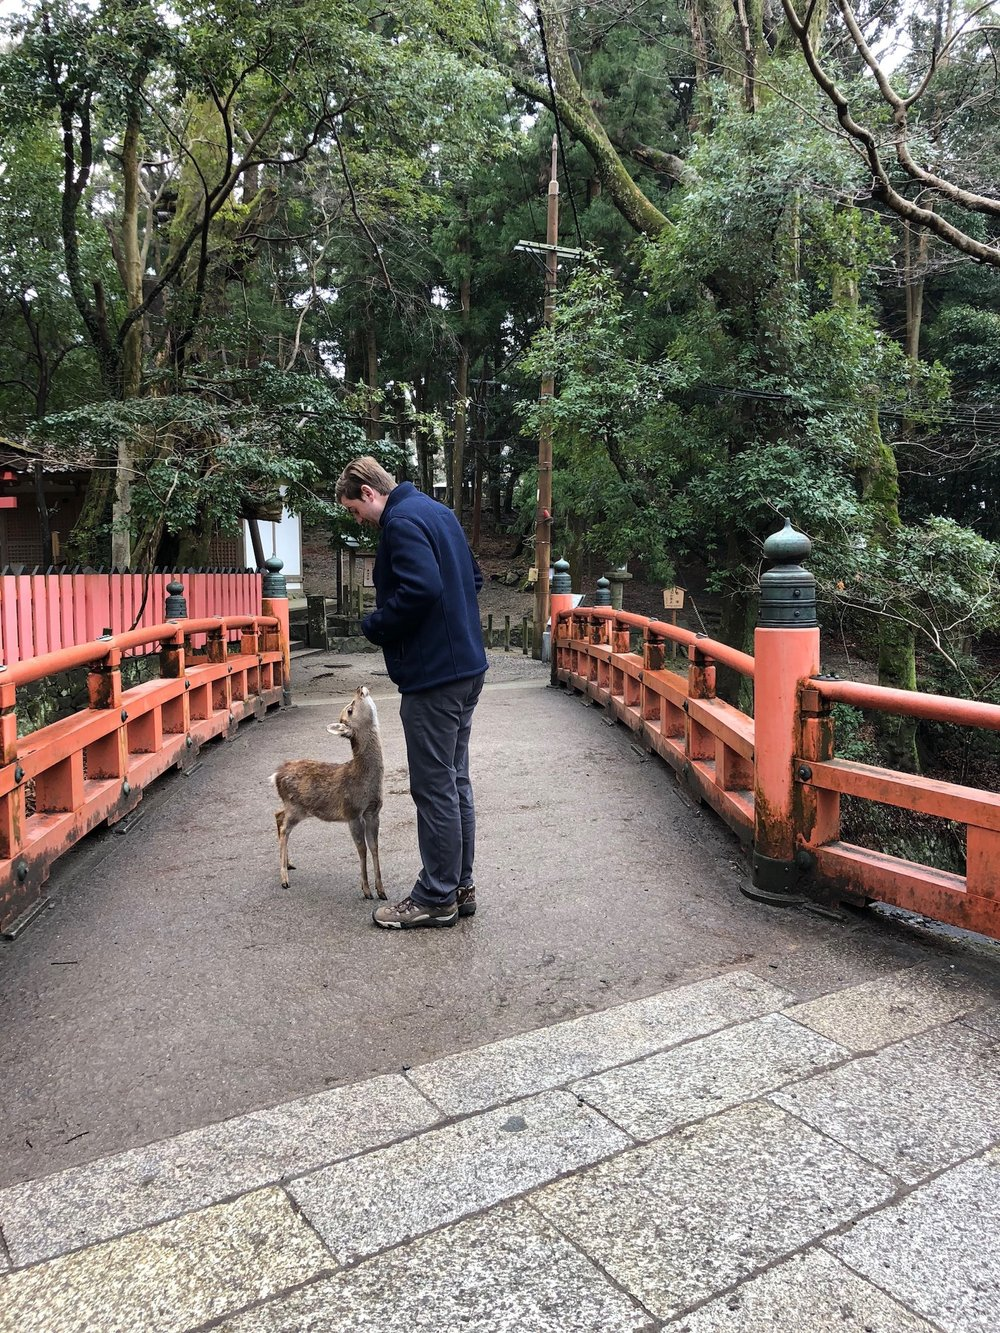 Man has a conversation with a cute baby deer in Nara, Japan